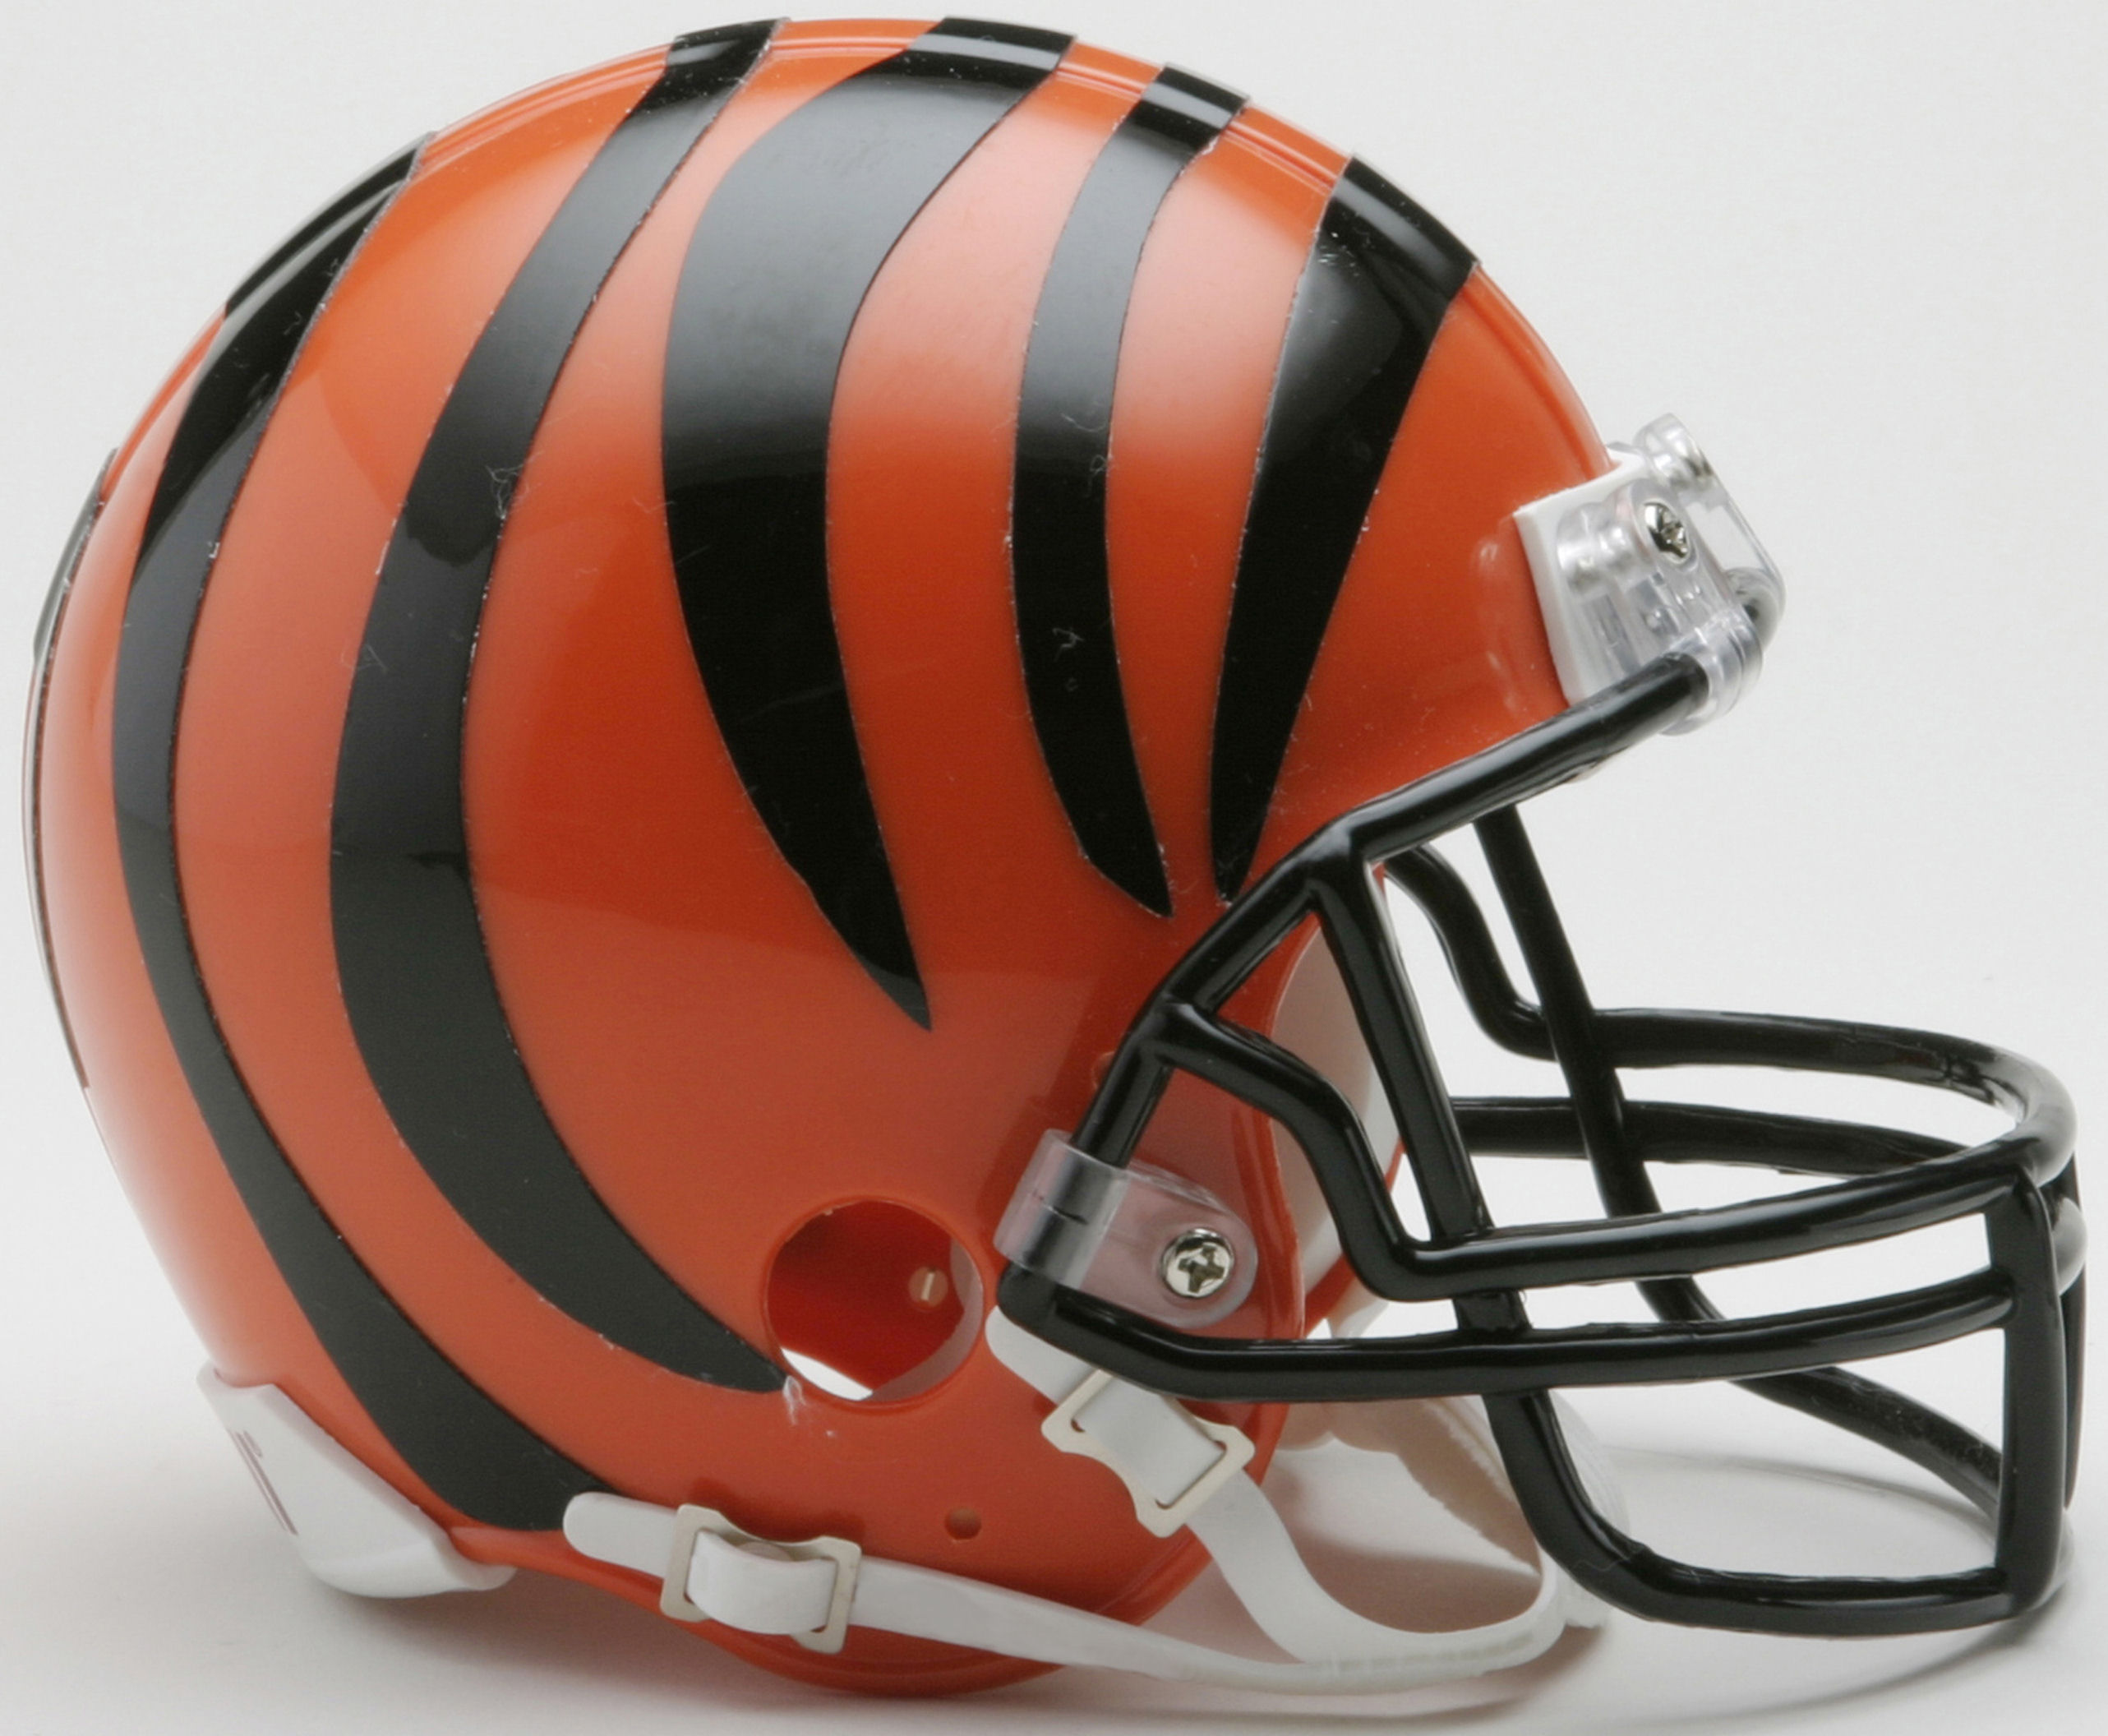 Cincinnati Bengals NFL Mini Football Helmet